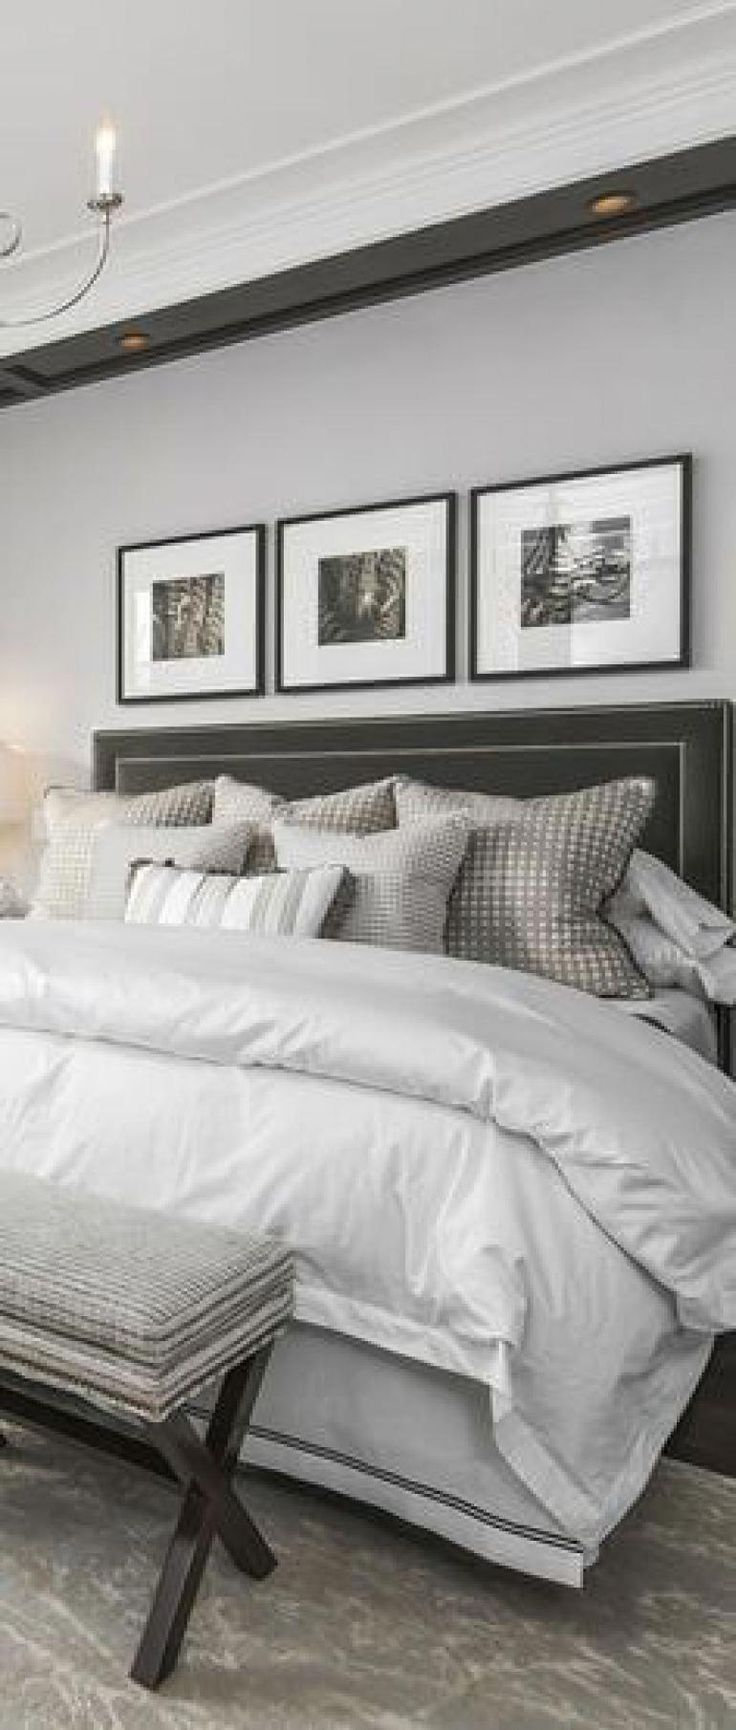 Best Small Master Bedroom Ideas With King Size Bed – Classic 640 x 480